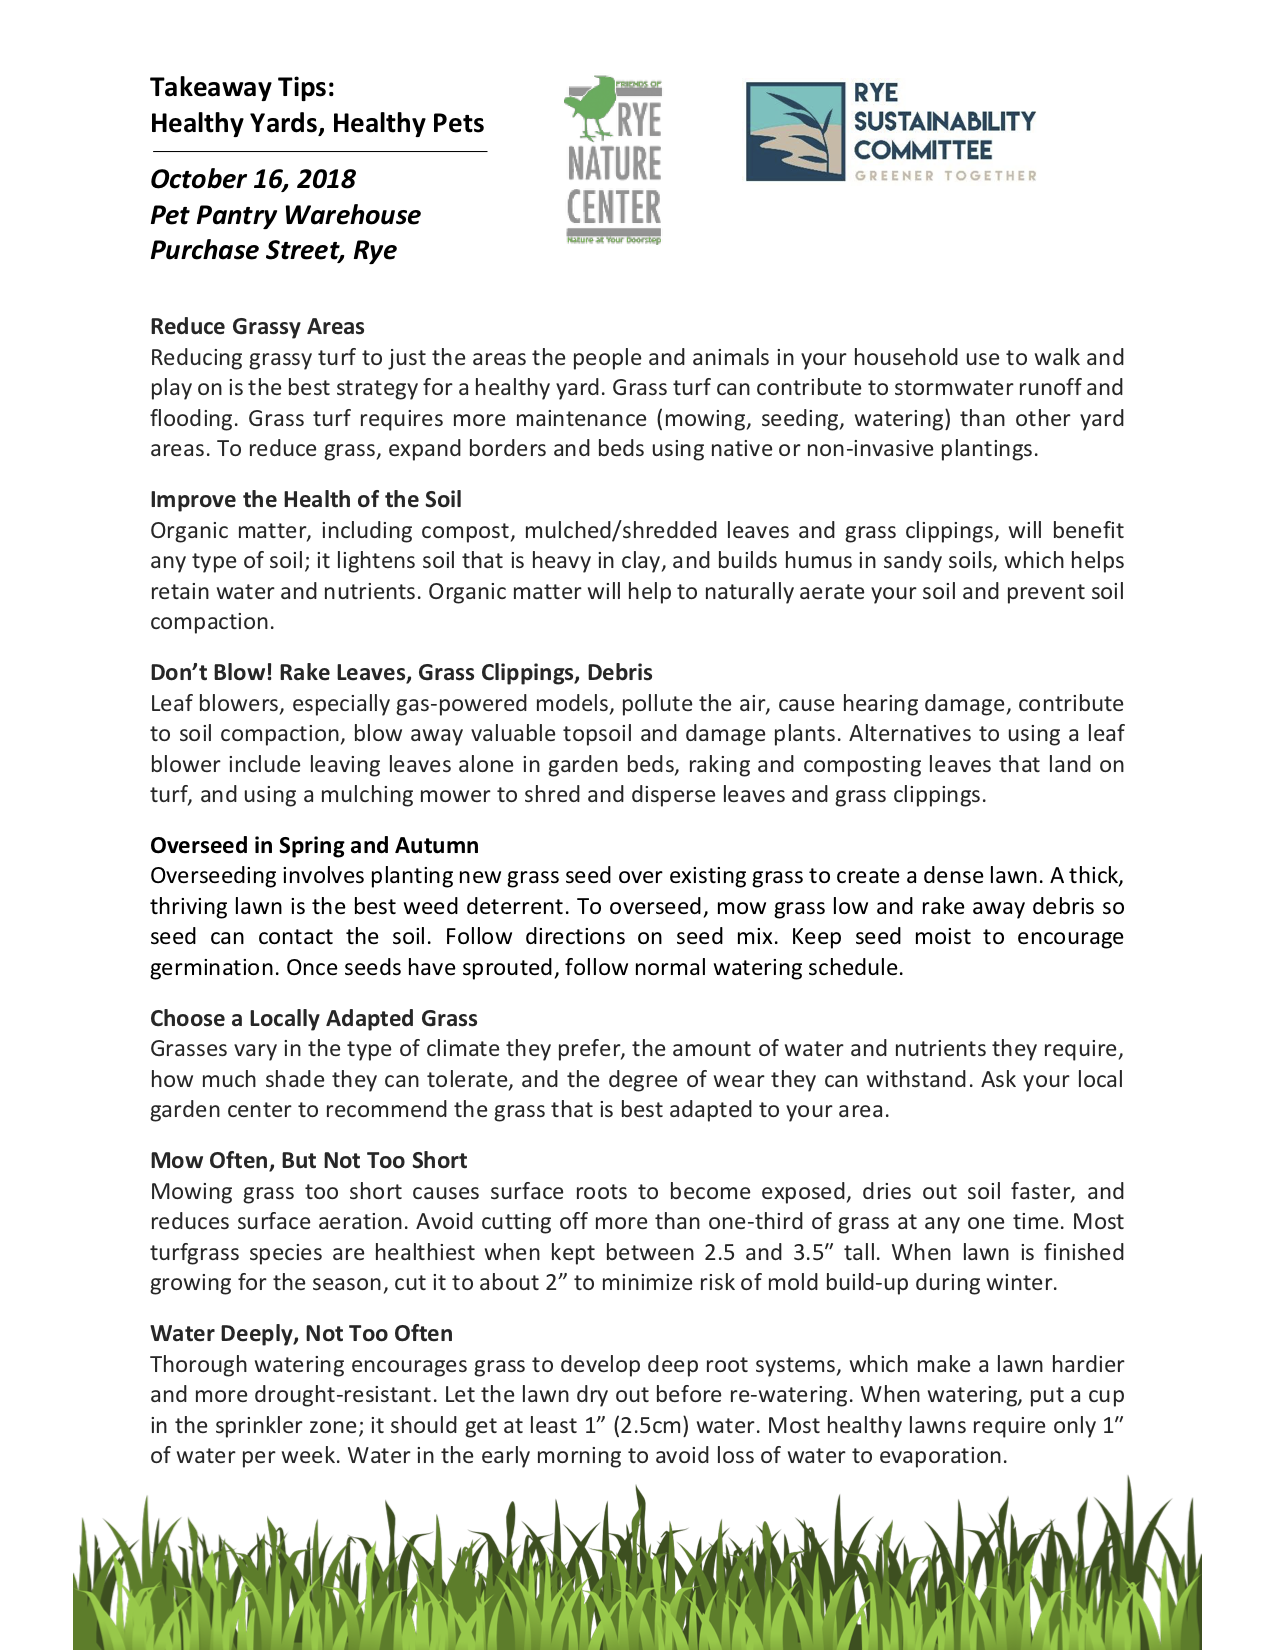 Takeaway Tips for Healthy Yards (Pets) png .png